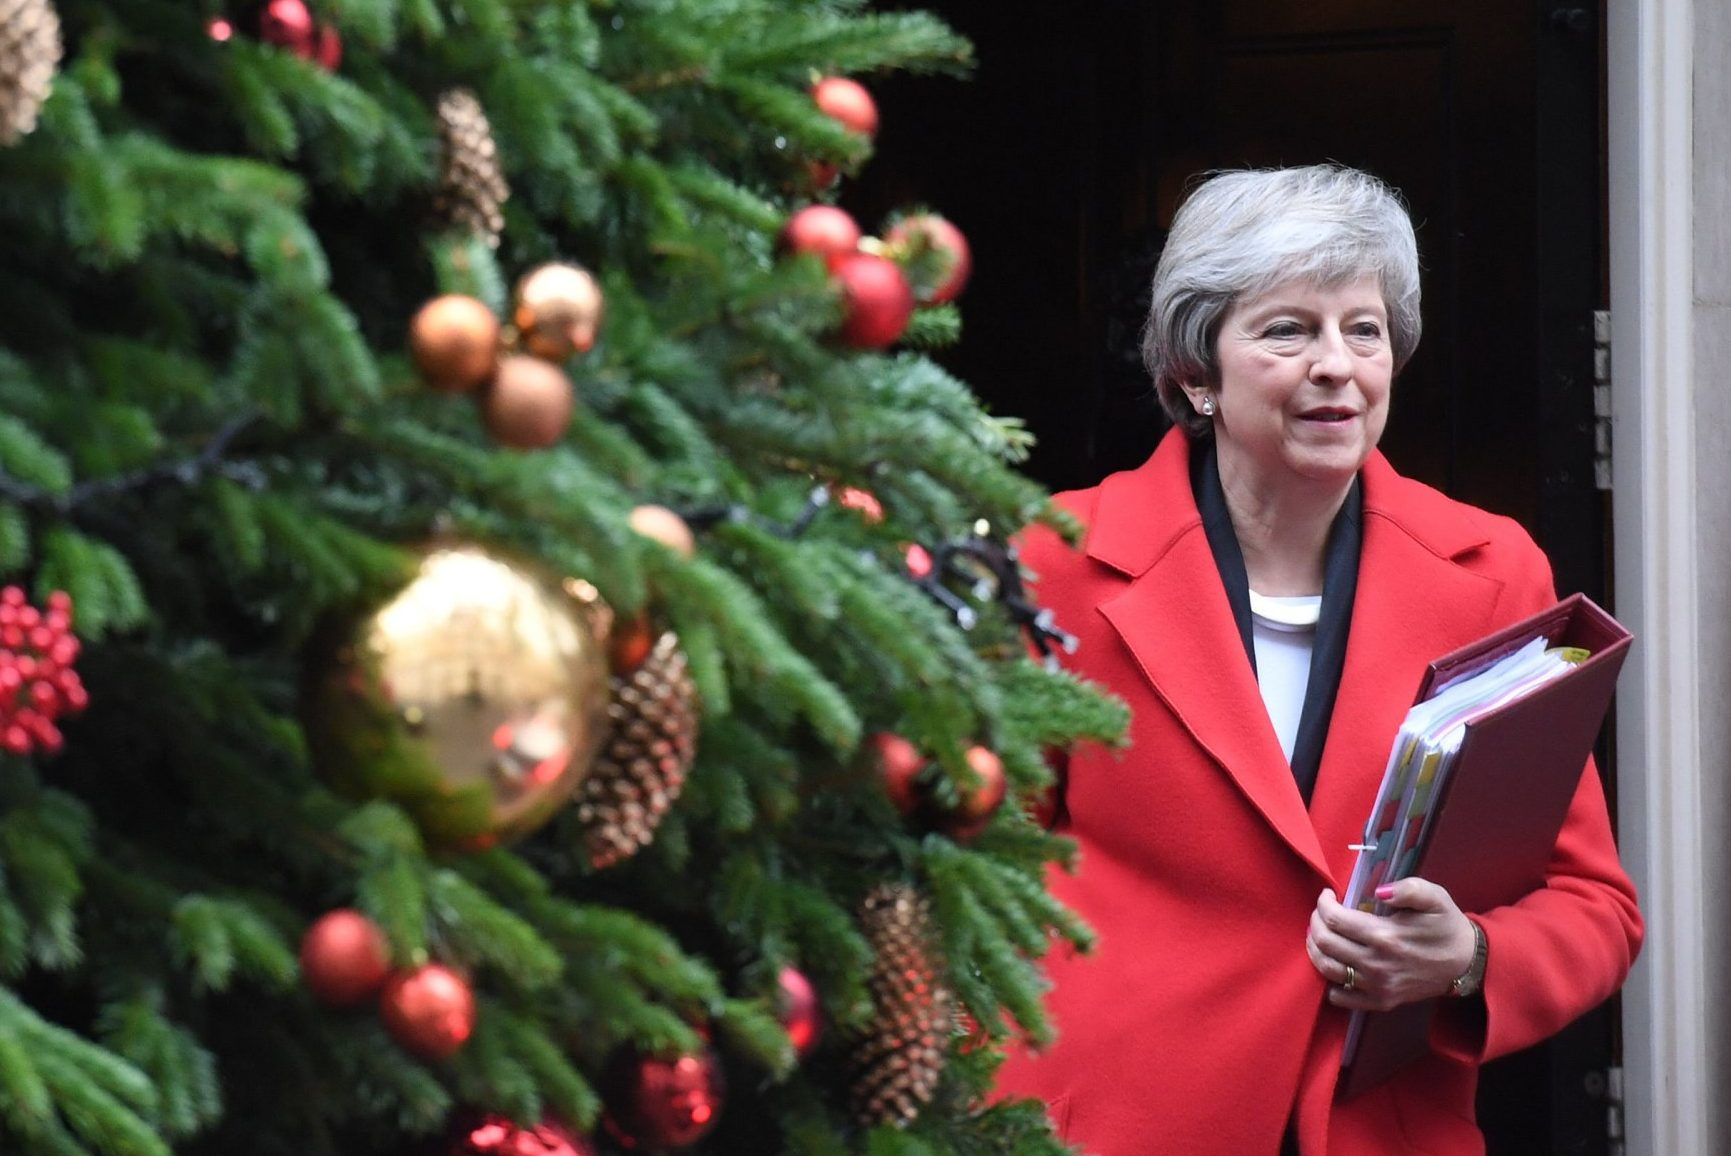 Prime Minister Theresa May leaves 10 Downing Street, London, for the House of Commons to face Prime Minister's Questions. PRESS ASSOCIATION Photo. Picture date: Wednesday December 5, 2018. Photo credit should read: Stefan Rousseau/PA Wire